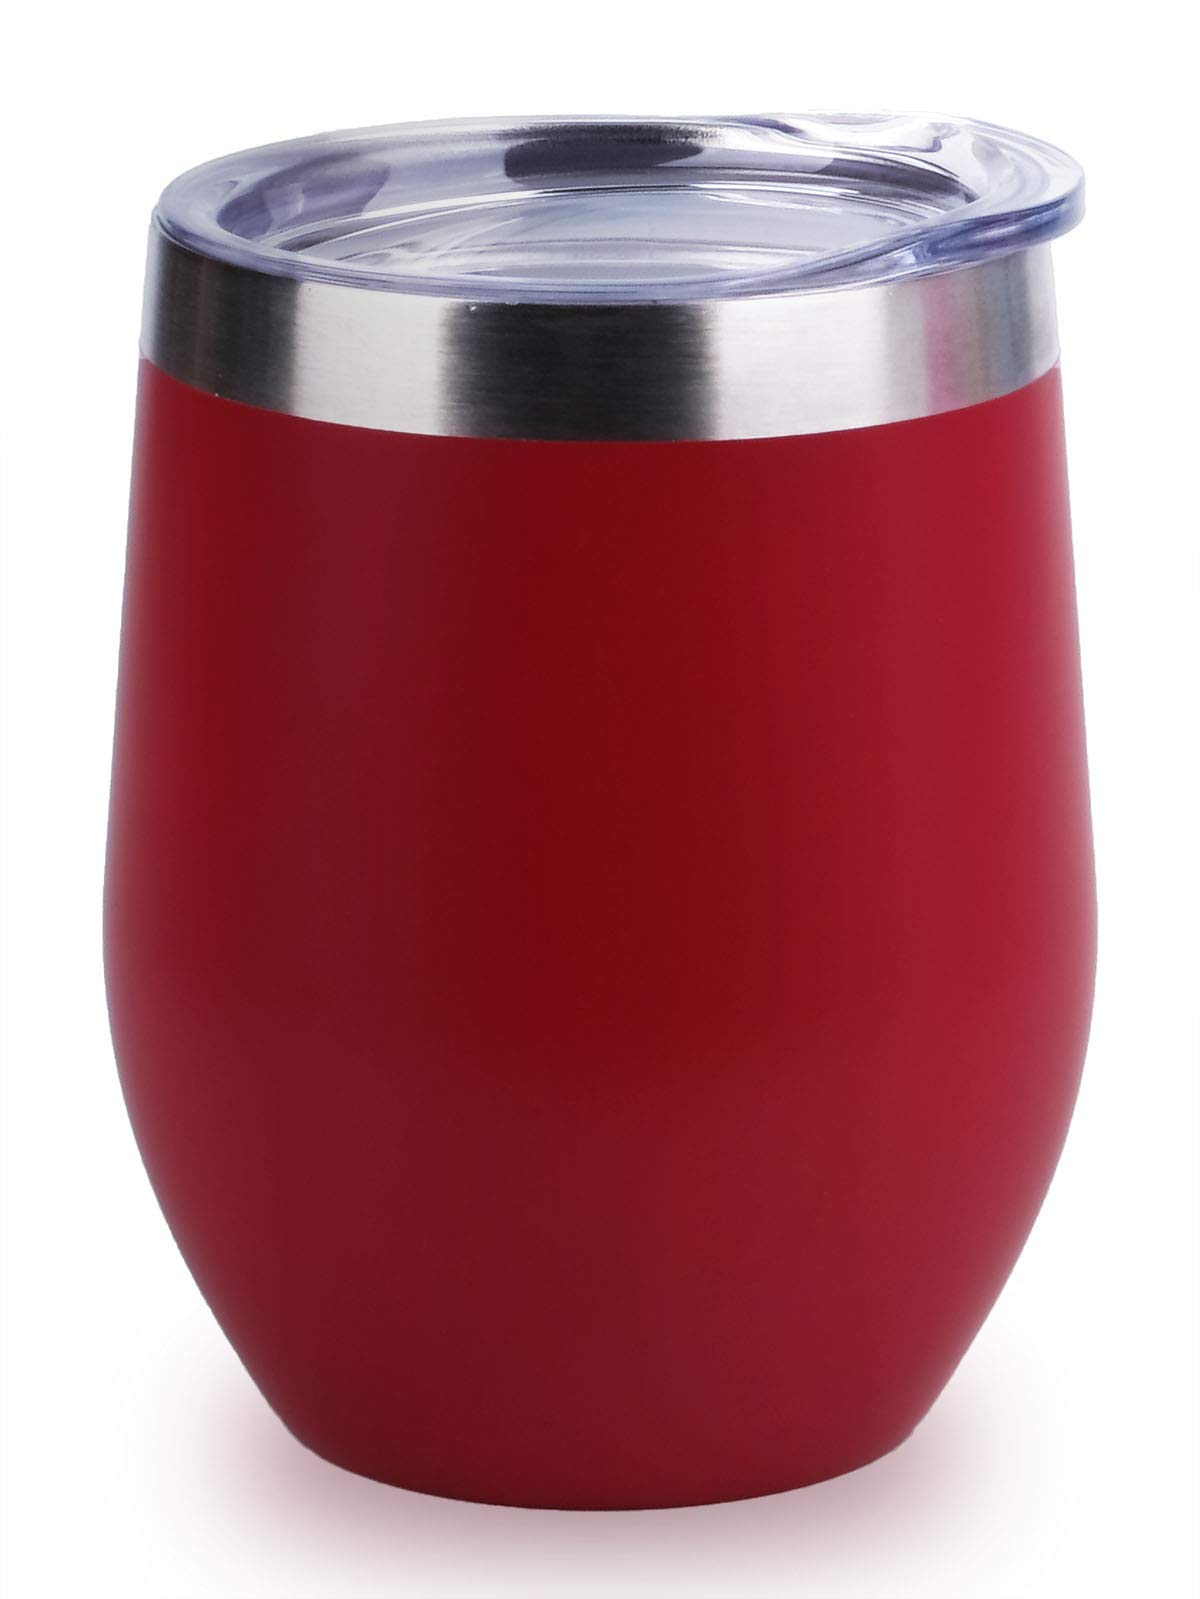 06f6dc678c6 Details about Insulated Wine Tumbler with Lid Stemless Stainless Steel  Insulated Wine Glass